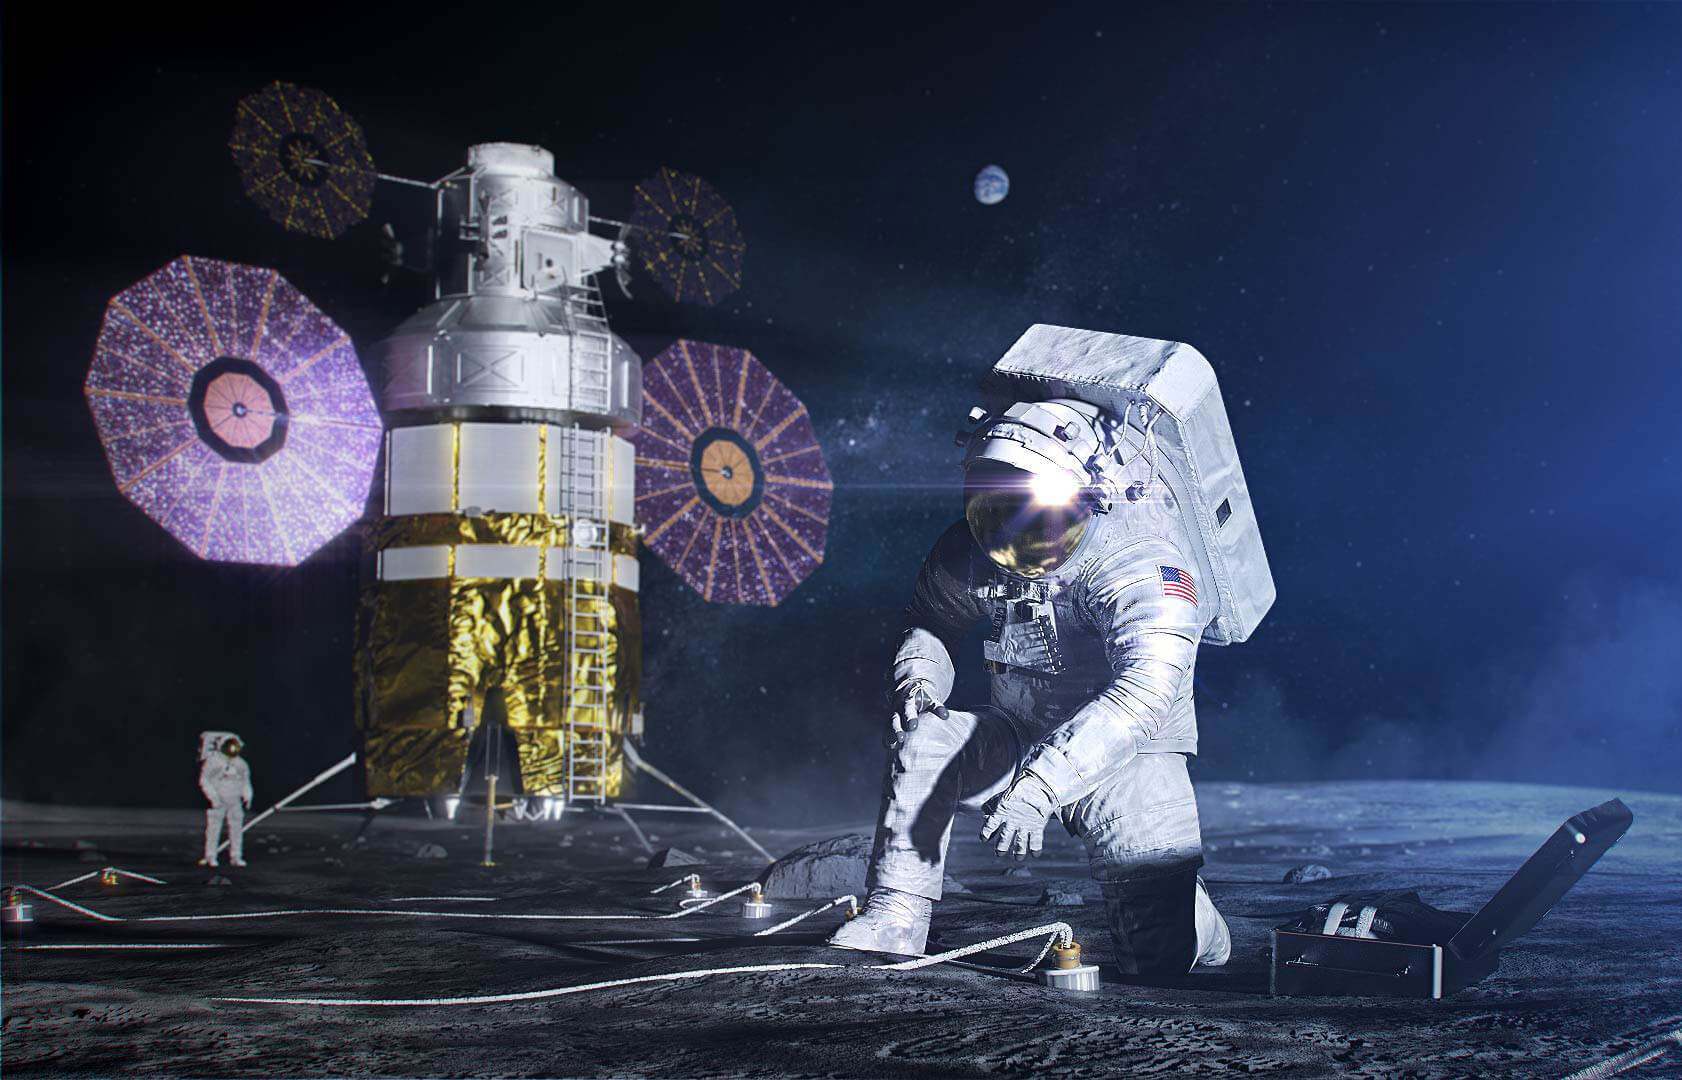 NASA lays out the 'Artemis Accords' for international cooperation on moon trips